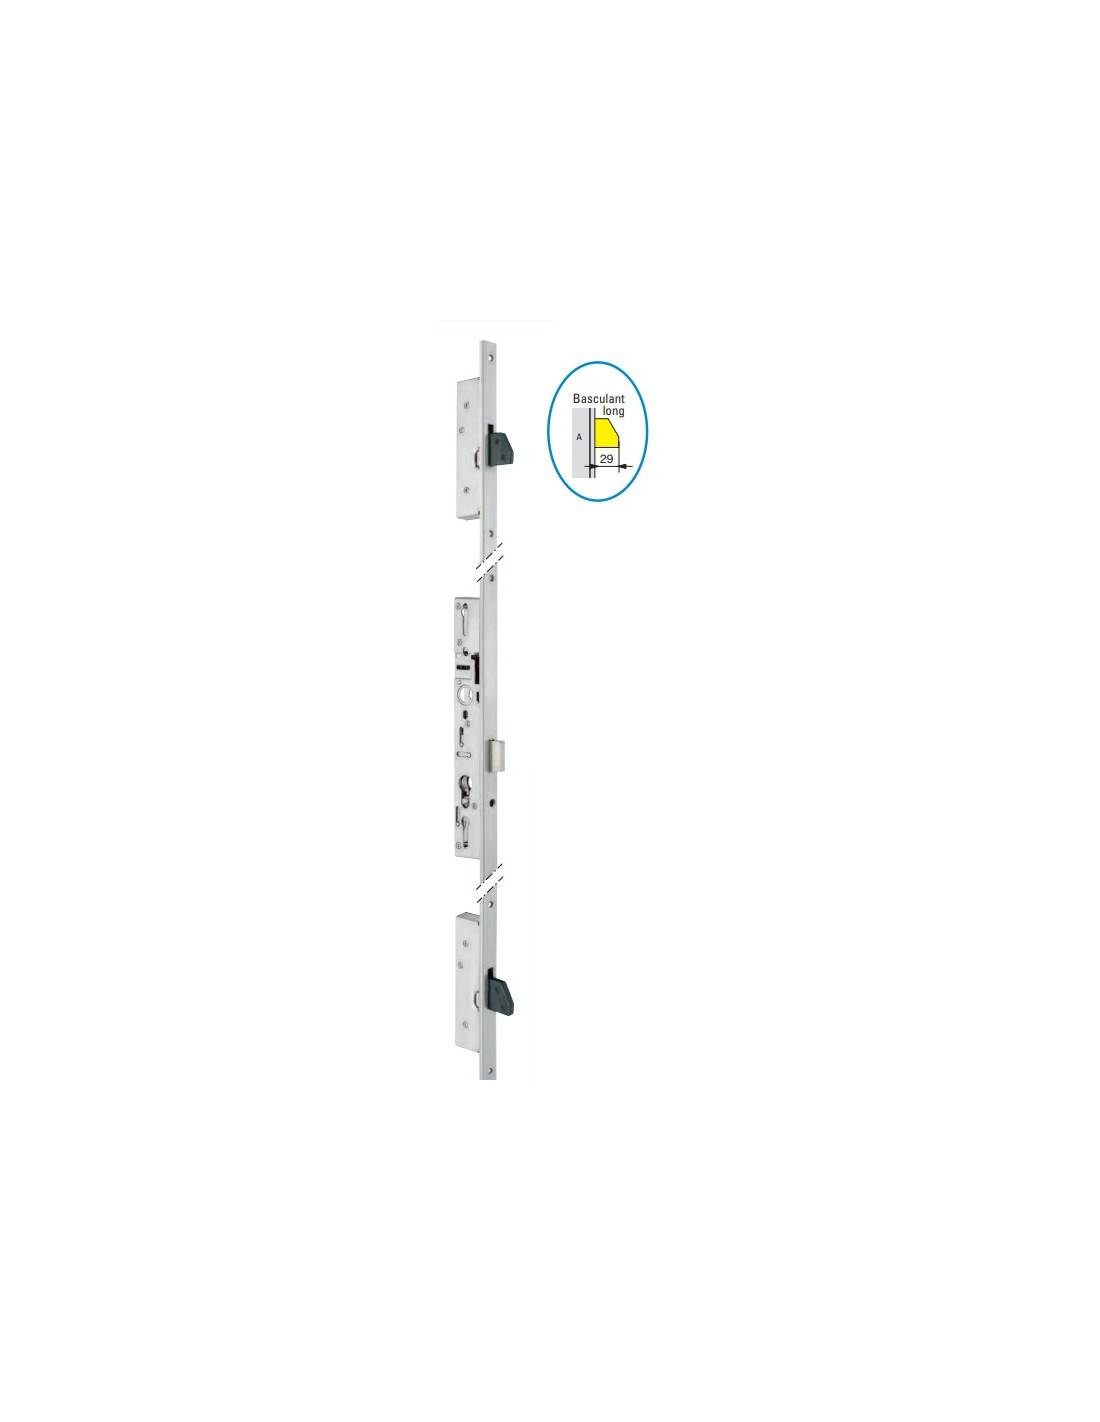 Serrure 3 points TF3 pêne dormant 45 mm têtière en U 24X6 - STREMLER - 6372.45.0A